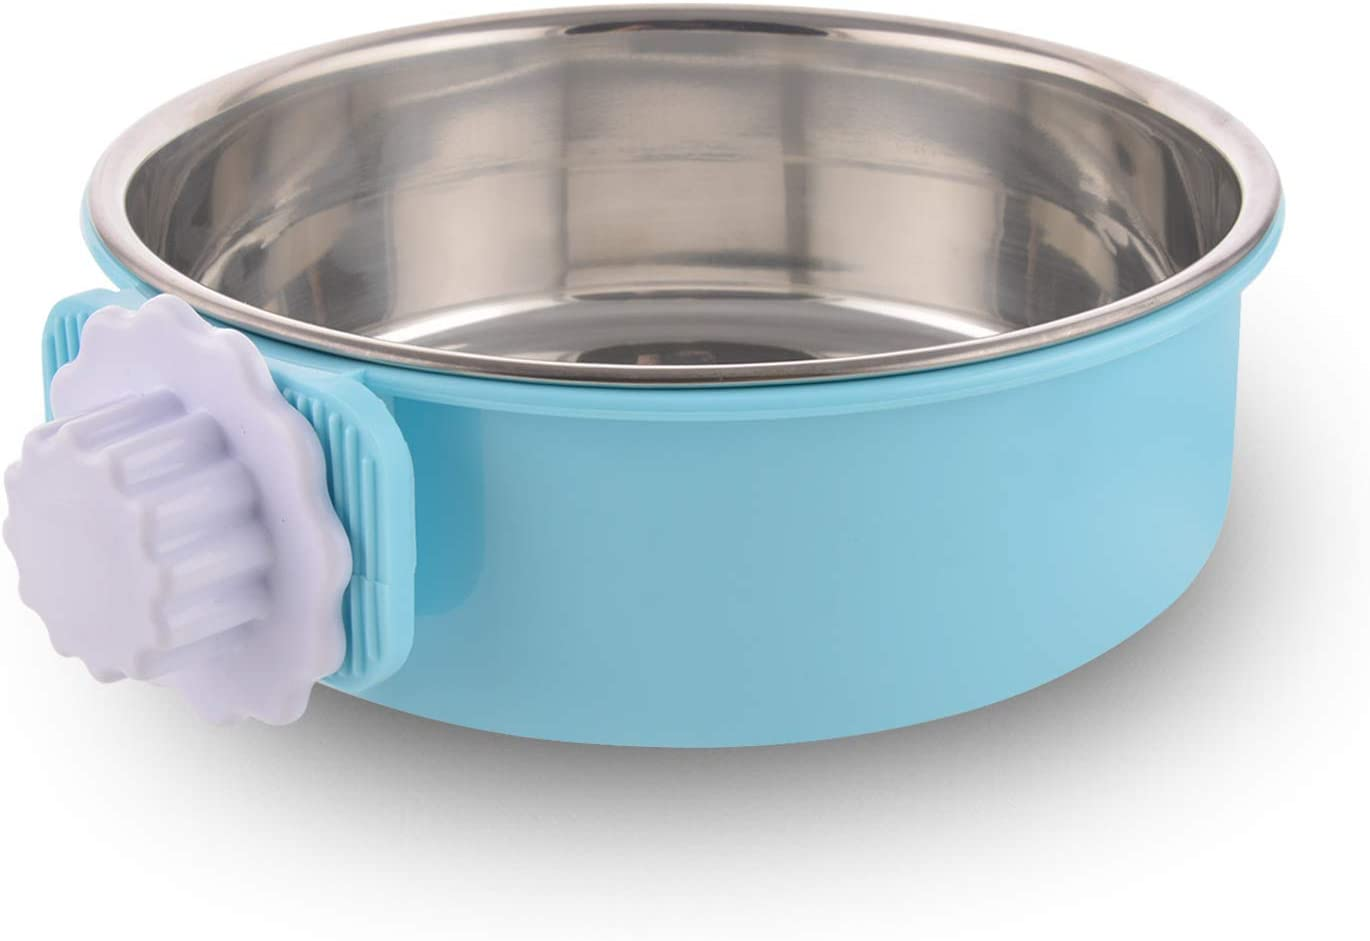 Crate Dog Bowl Removable Stainless Steel Water Food Feeder Bowls Cage Coop Cup for Cat Puppy Bird Pets (Large, Blue)